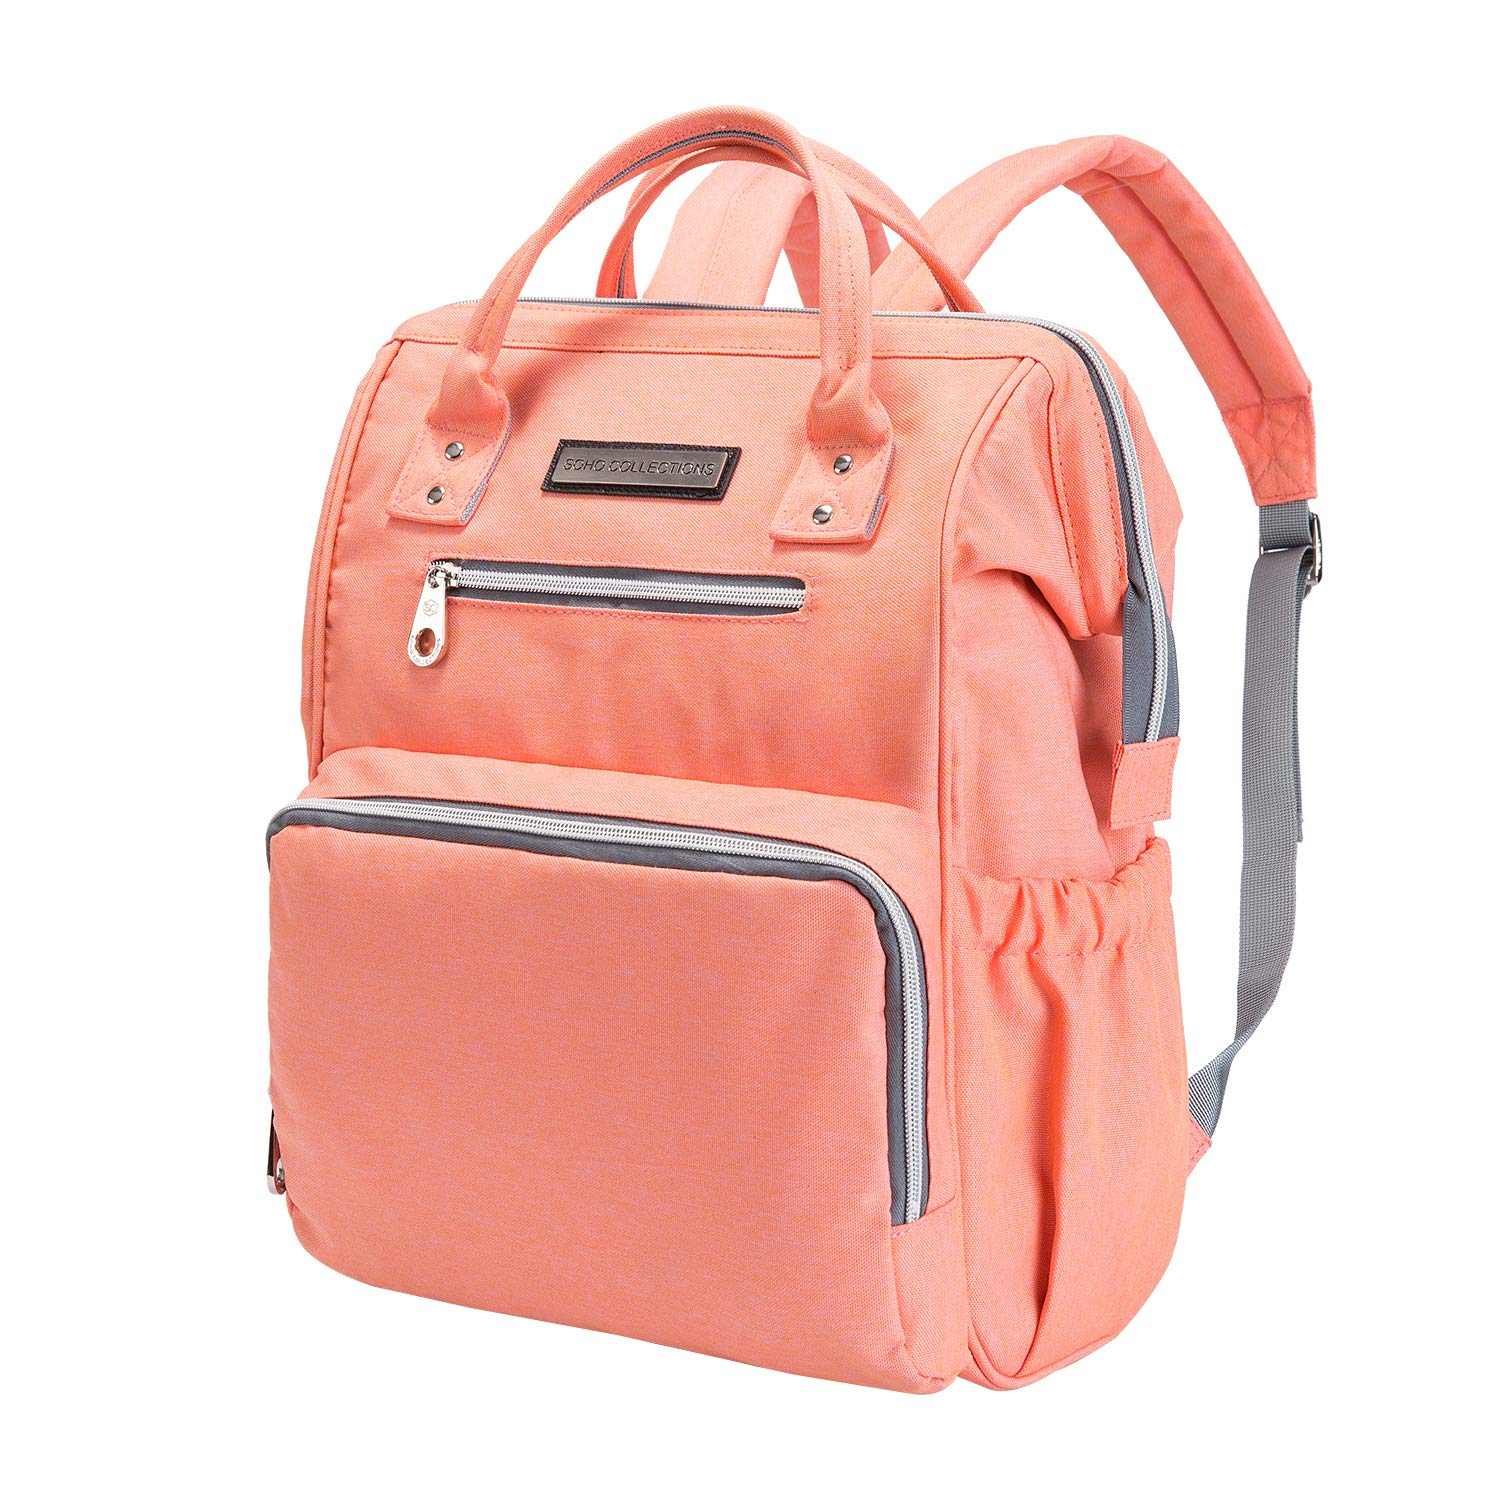 SoHo WideOpen Diaper Backpack Tote 3Pc, Coral